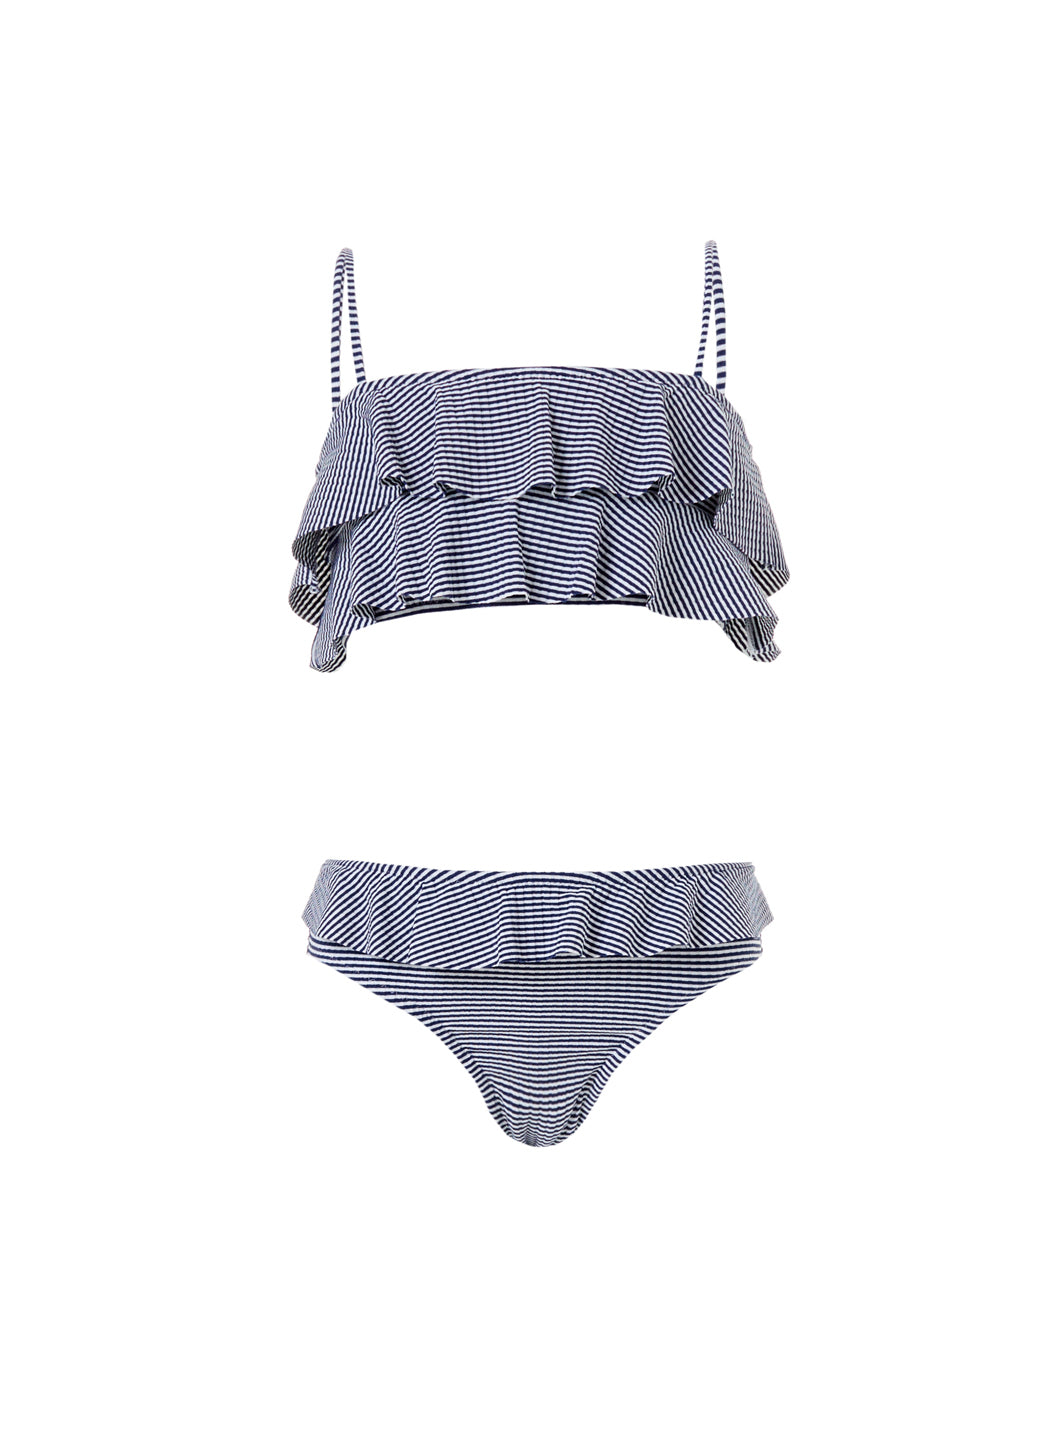 In gorgeous navy gingham, the Baby Noemie Navy Gingham Frill Bikini will be a favourite of your little one, with fun frill details! Order now!